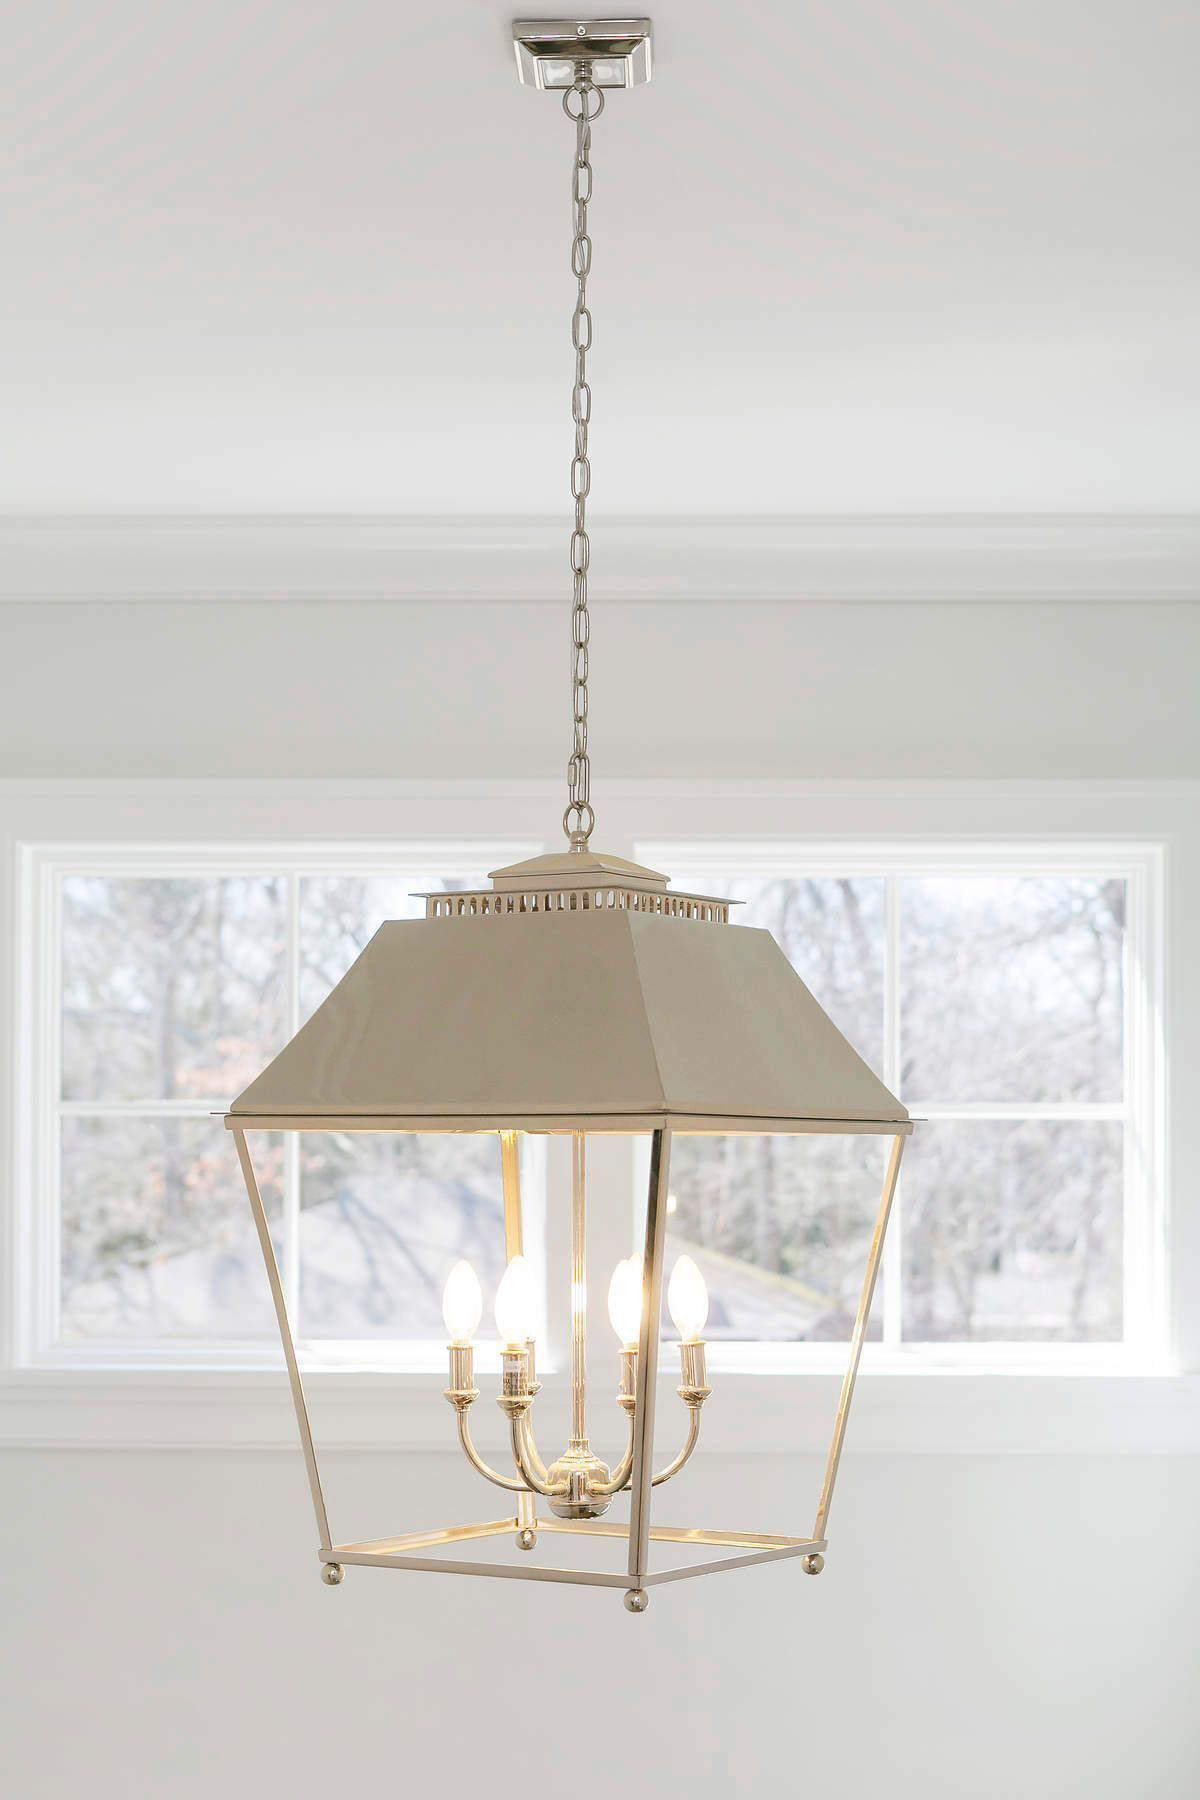 Laundry room with beautiful pendant light featuring a gold finish.